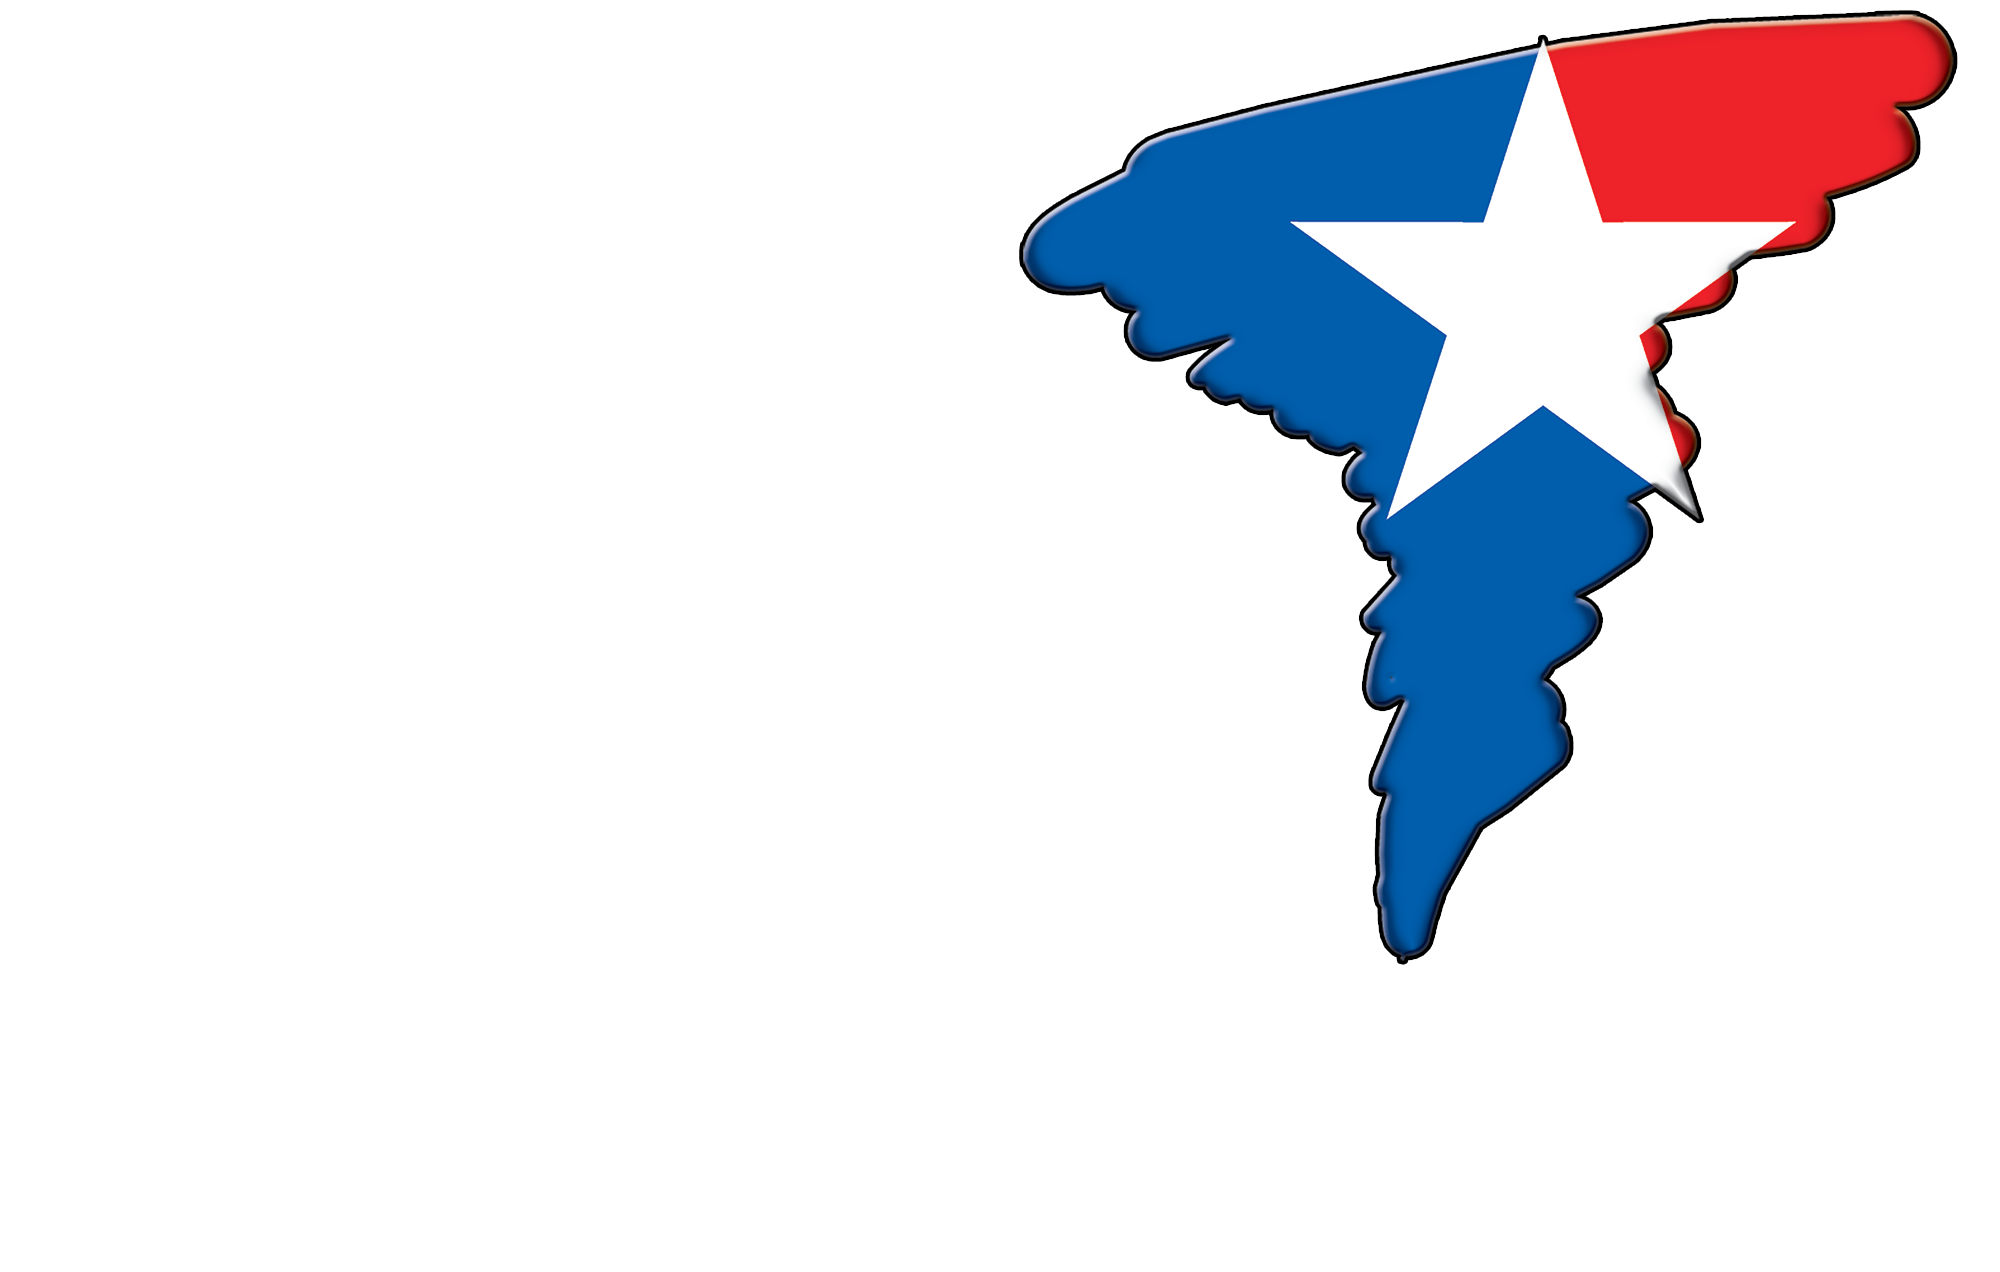 Free HD Interactive Weather Radar • Texas Storm Chasers